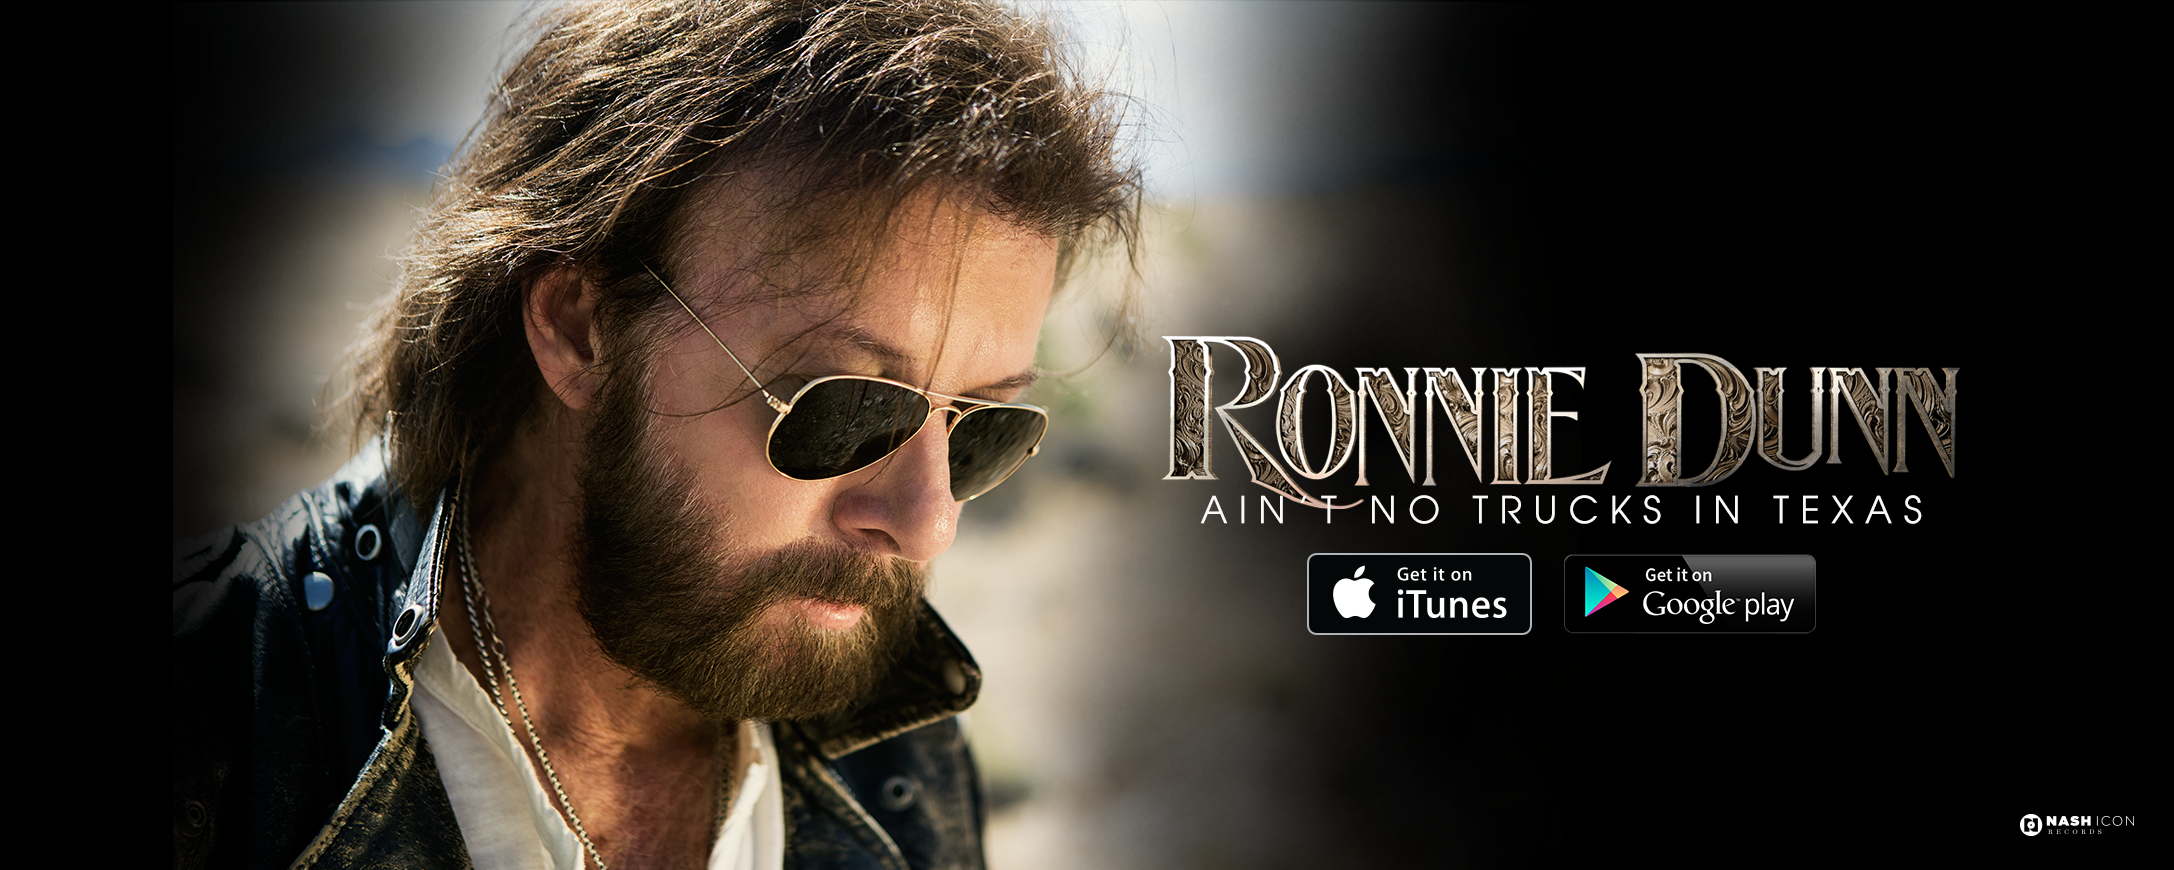 Ronnie_Dunn_Aint_No_Trucks_In_Texas